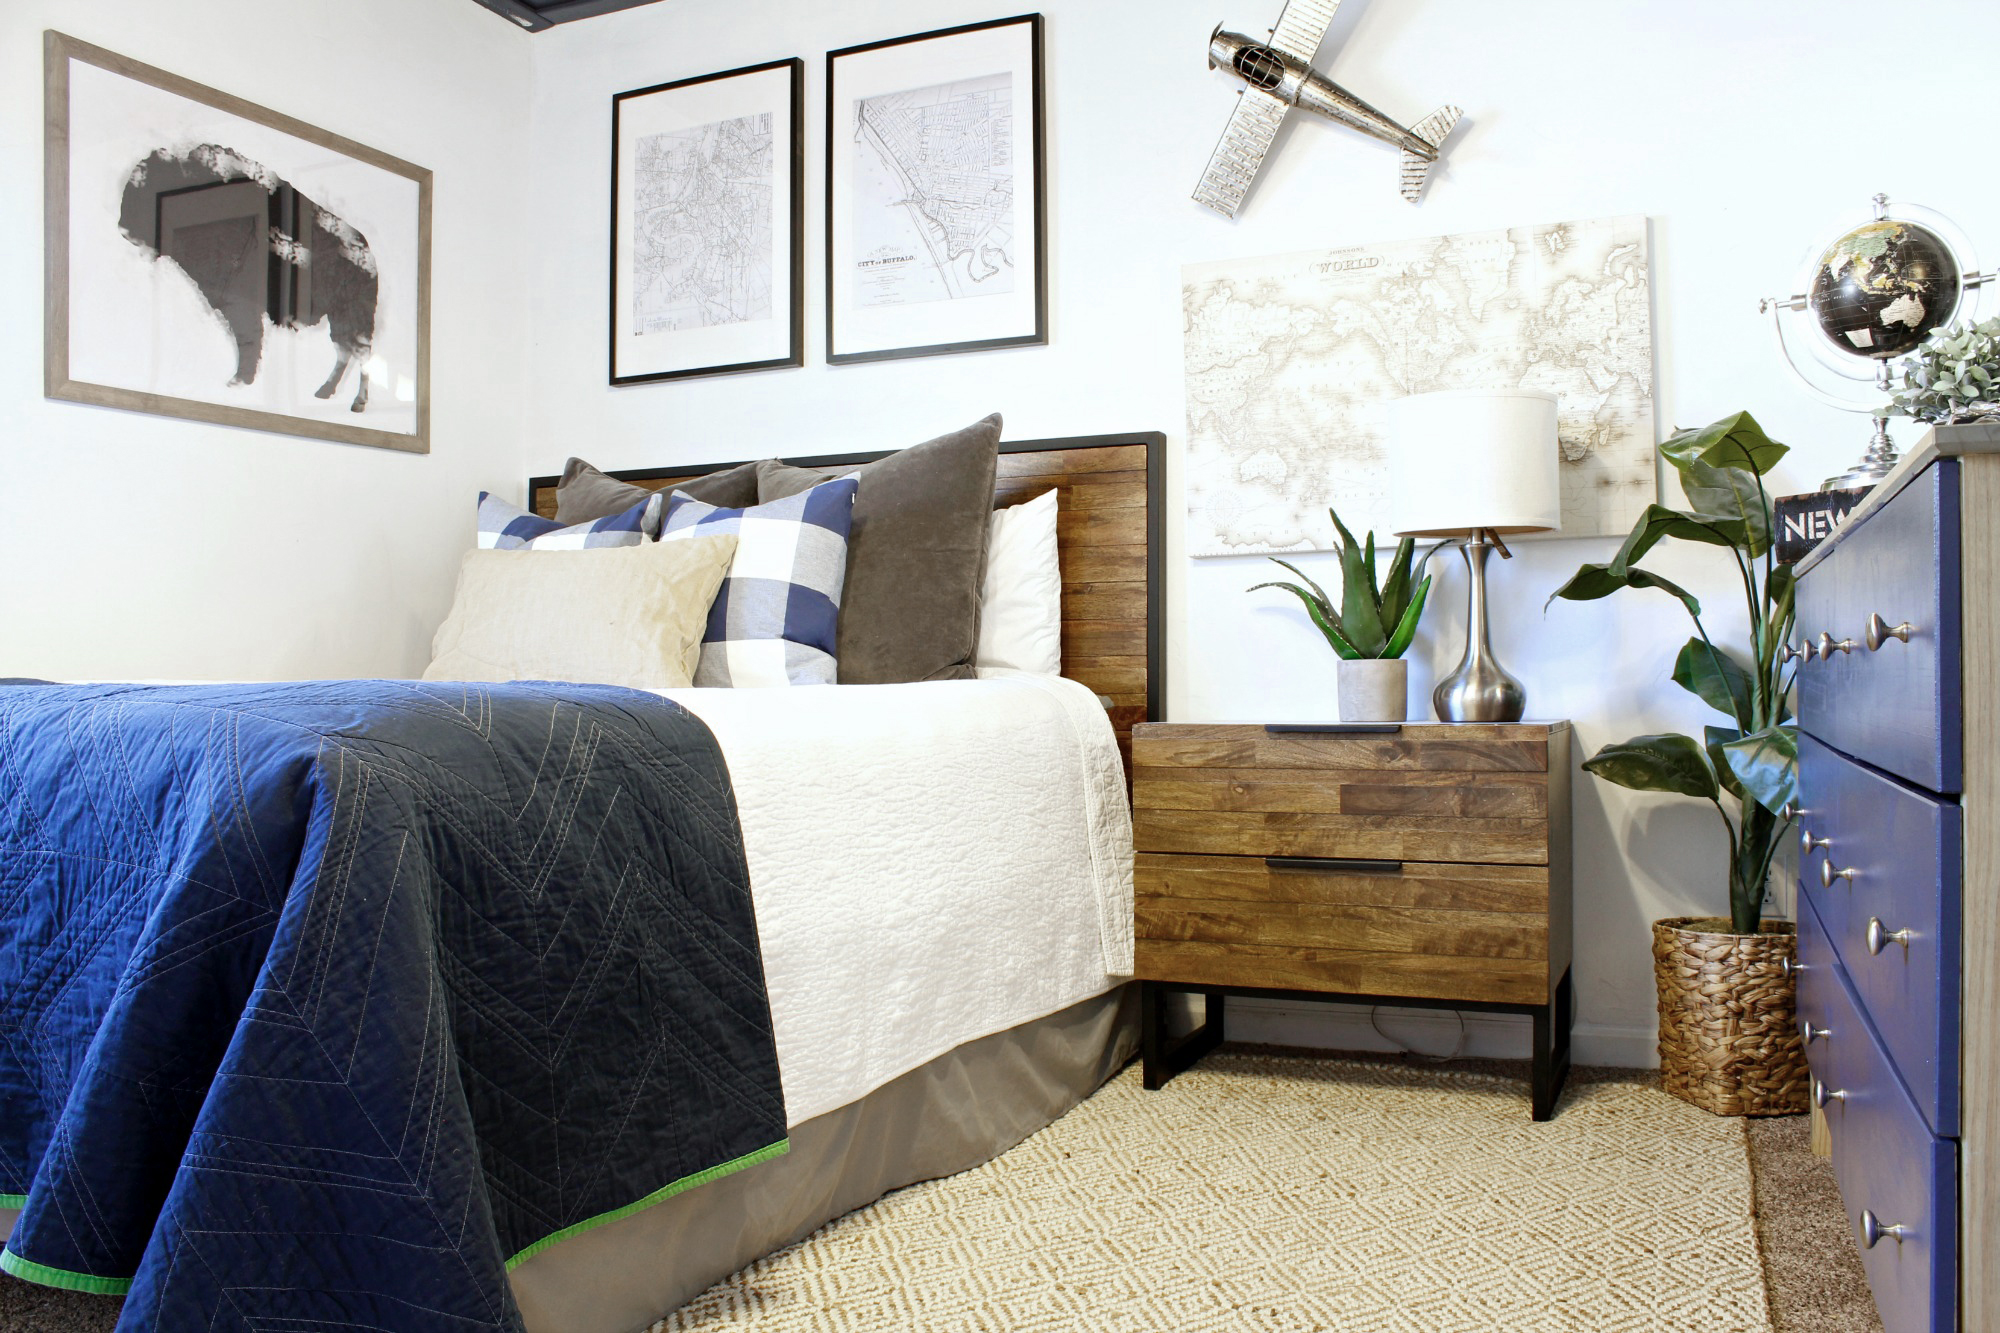 Guest room refresh with pier 1 classy clutter amipublicfo Gallery